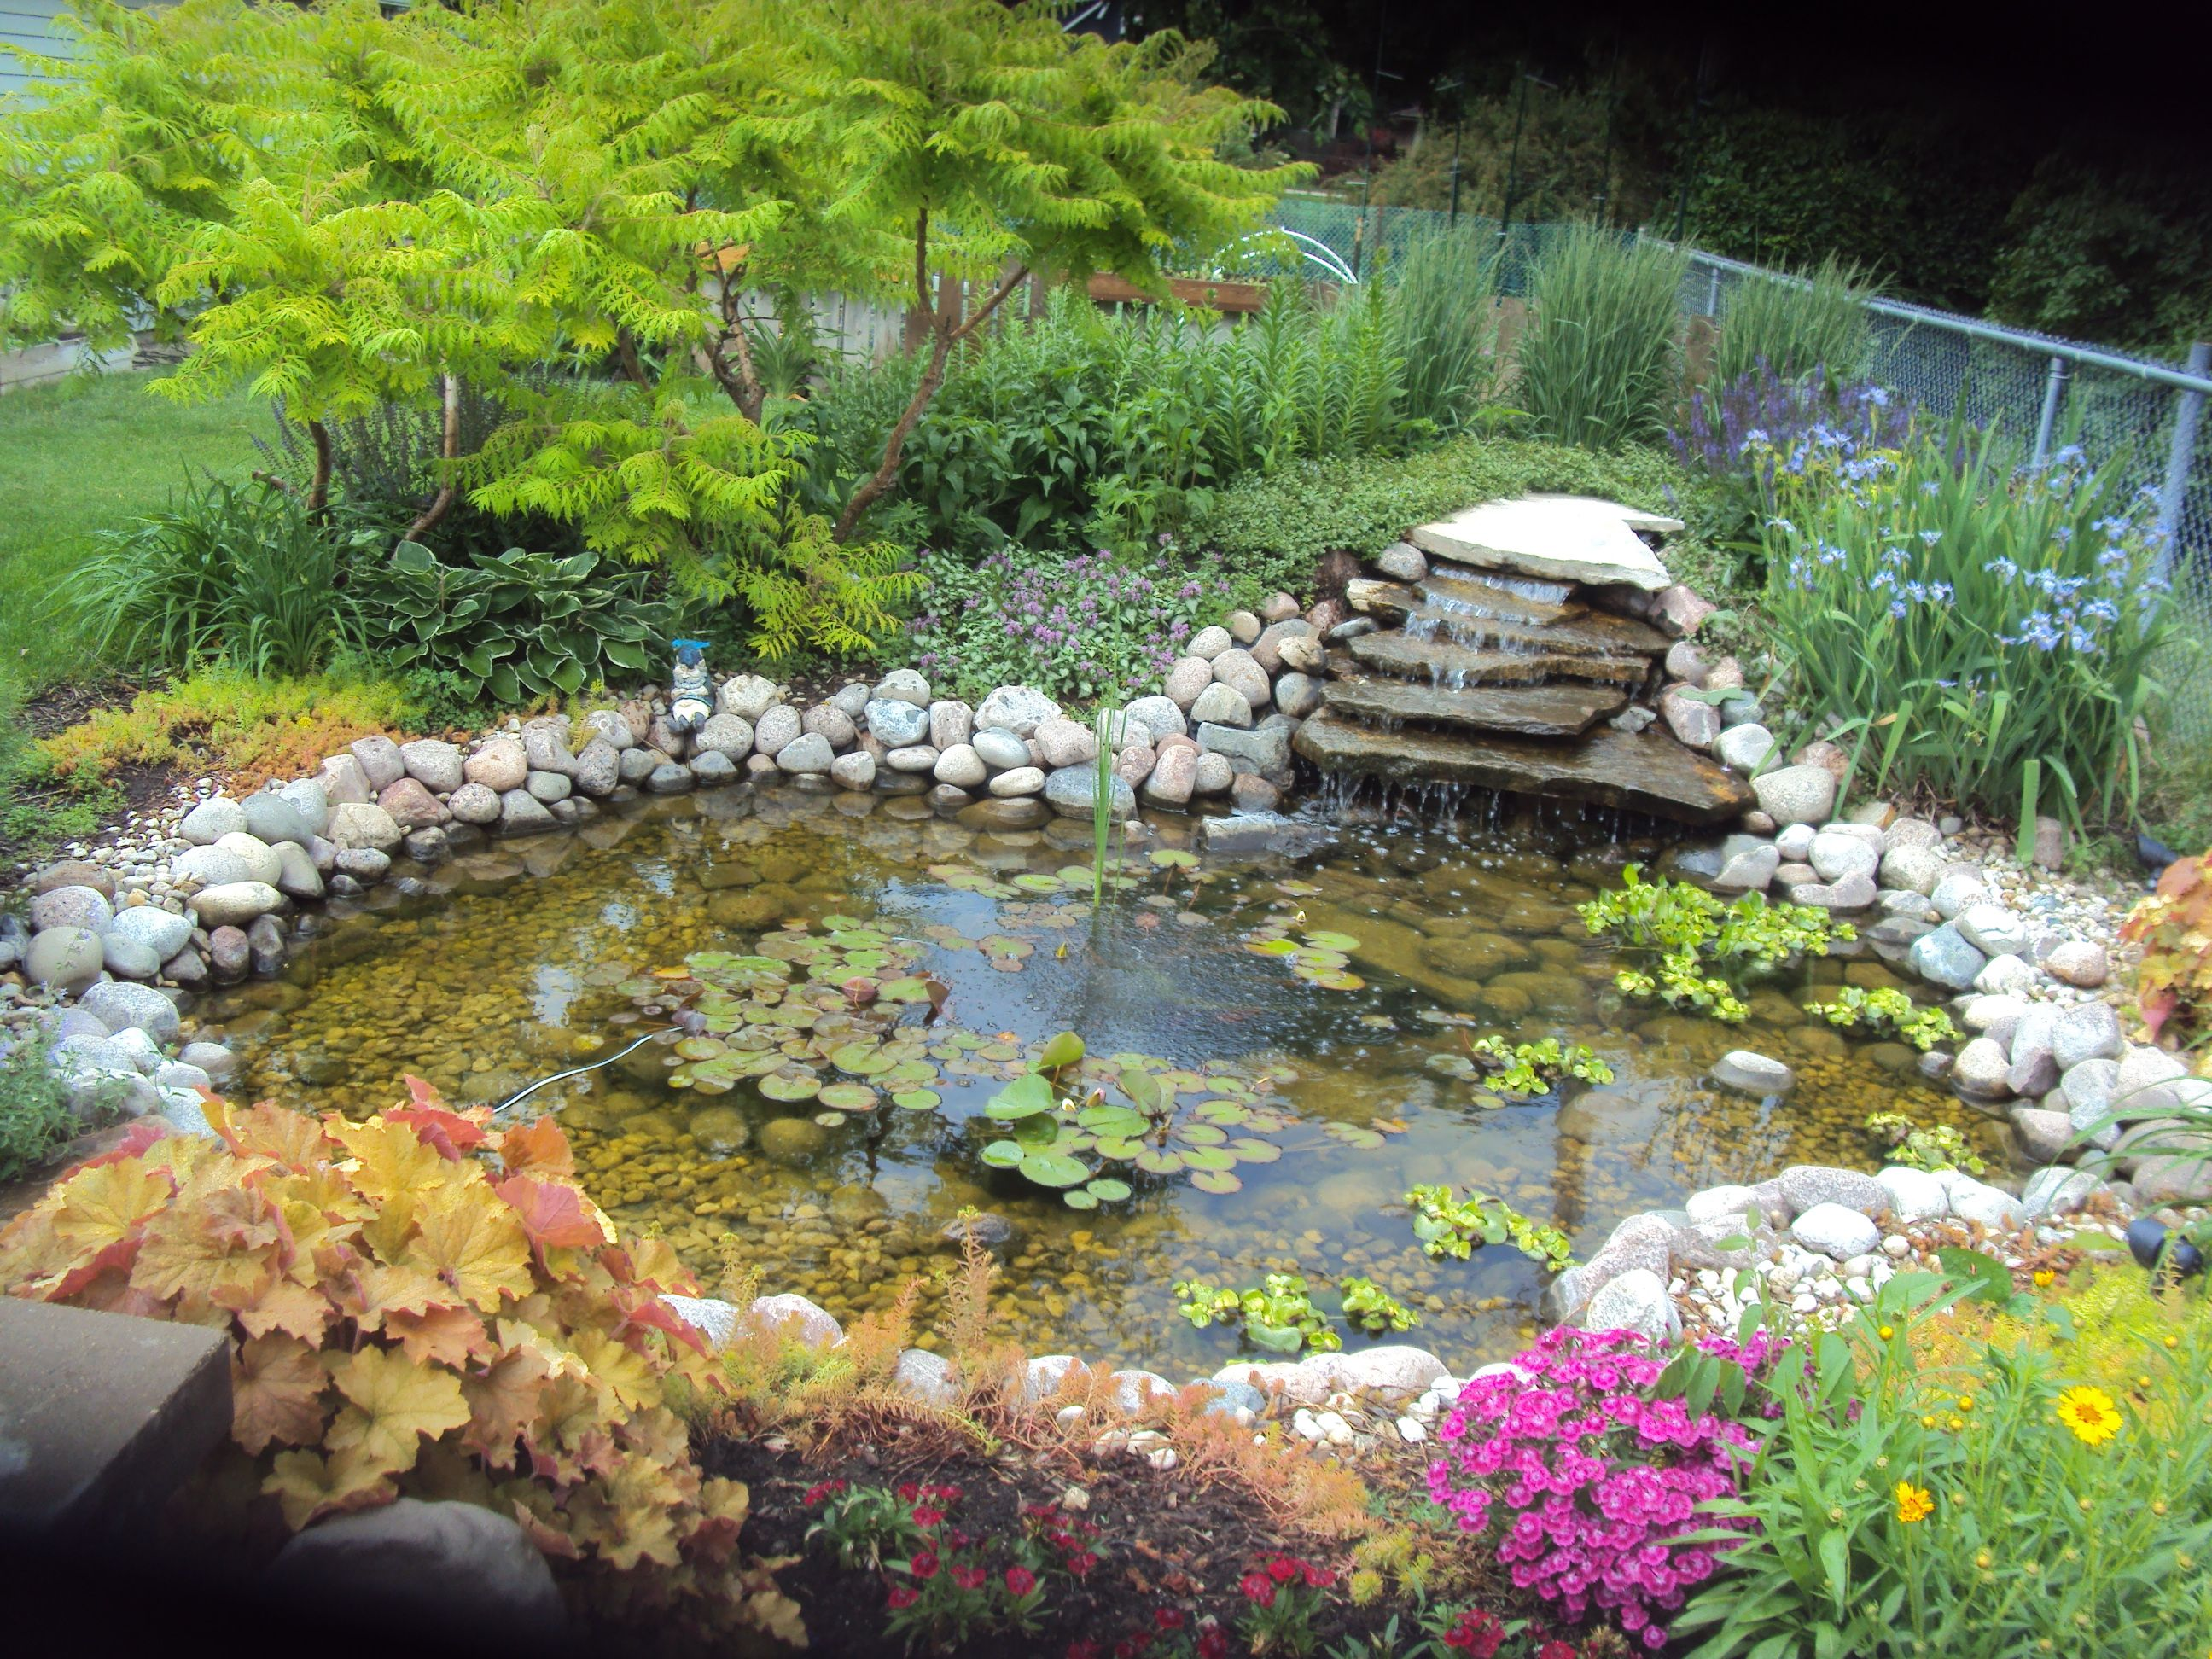 1000 images about Water Gardens on Pinterest Gardens Backyard